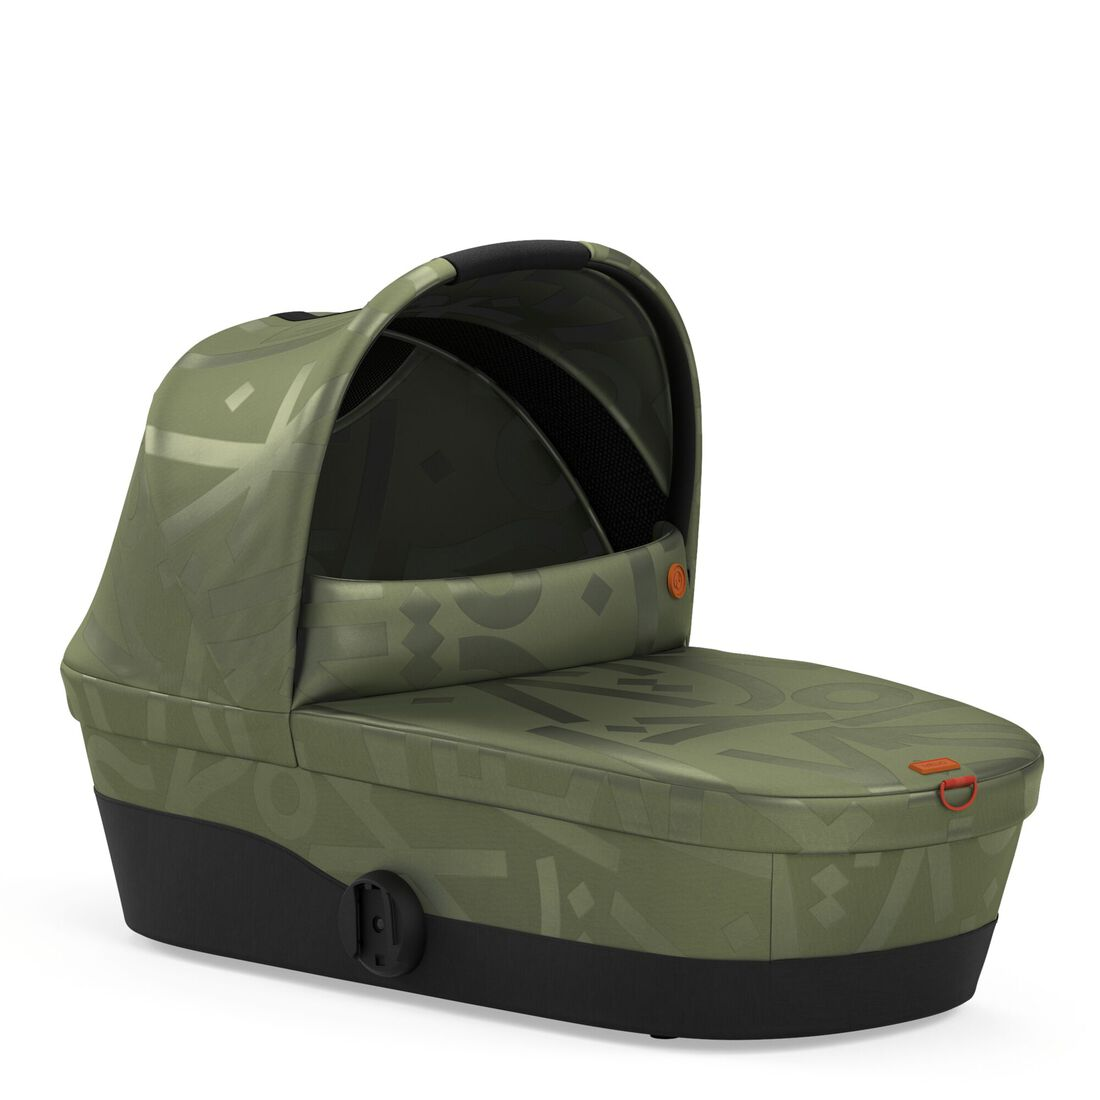 CYBEX Melio Cot - Olive Green in Olive Green large Bild 1